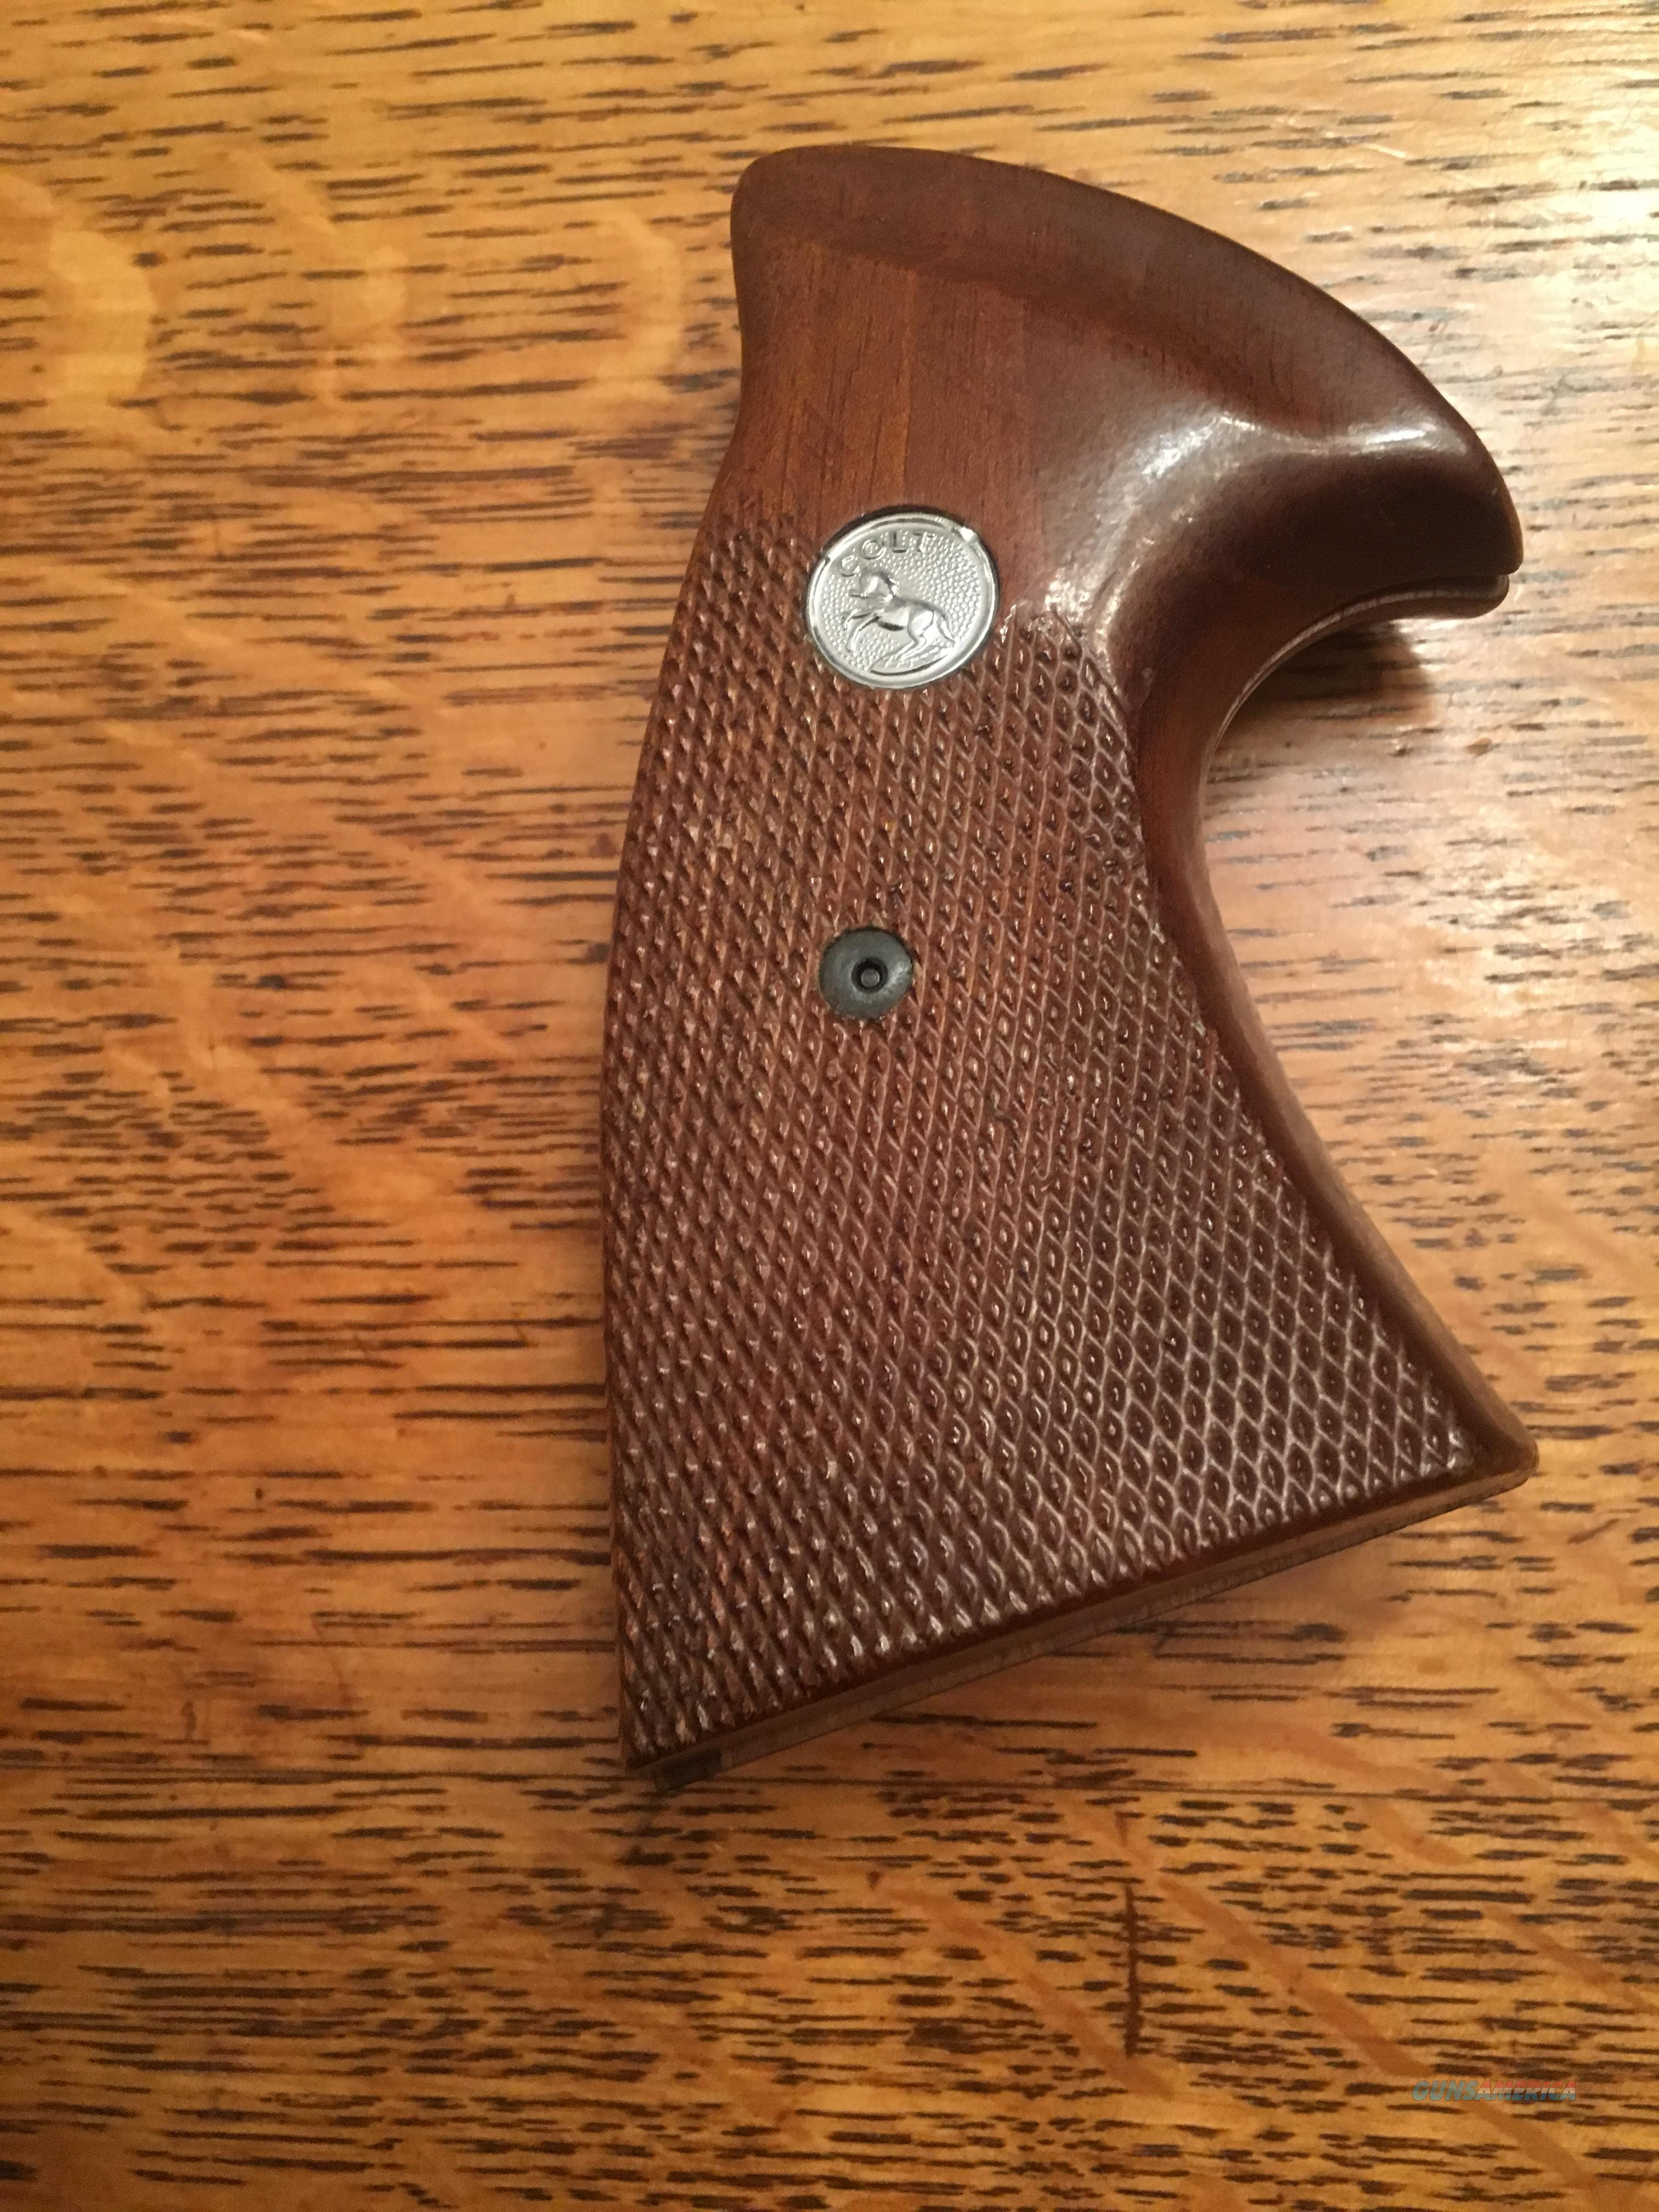 FACTORY COLT GRIPS  Non-Guns > Gunstocks, Grips & Wood